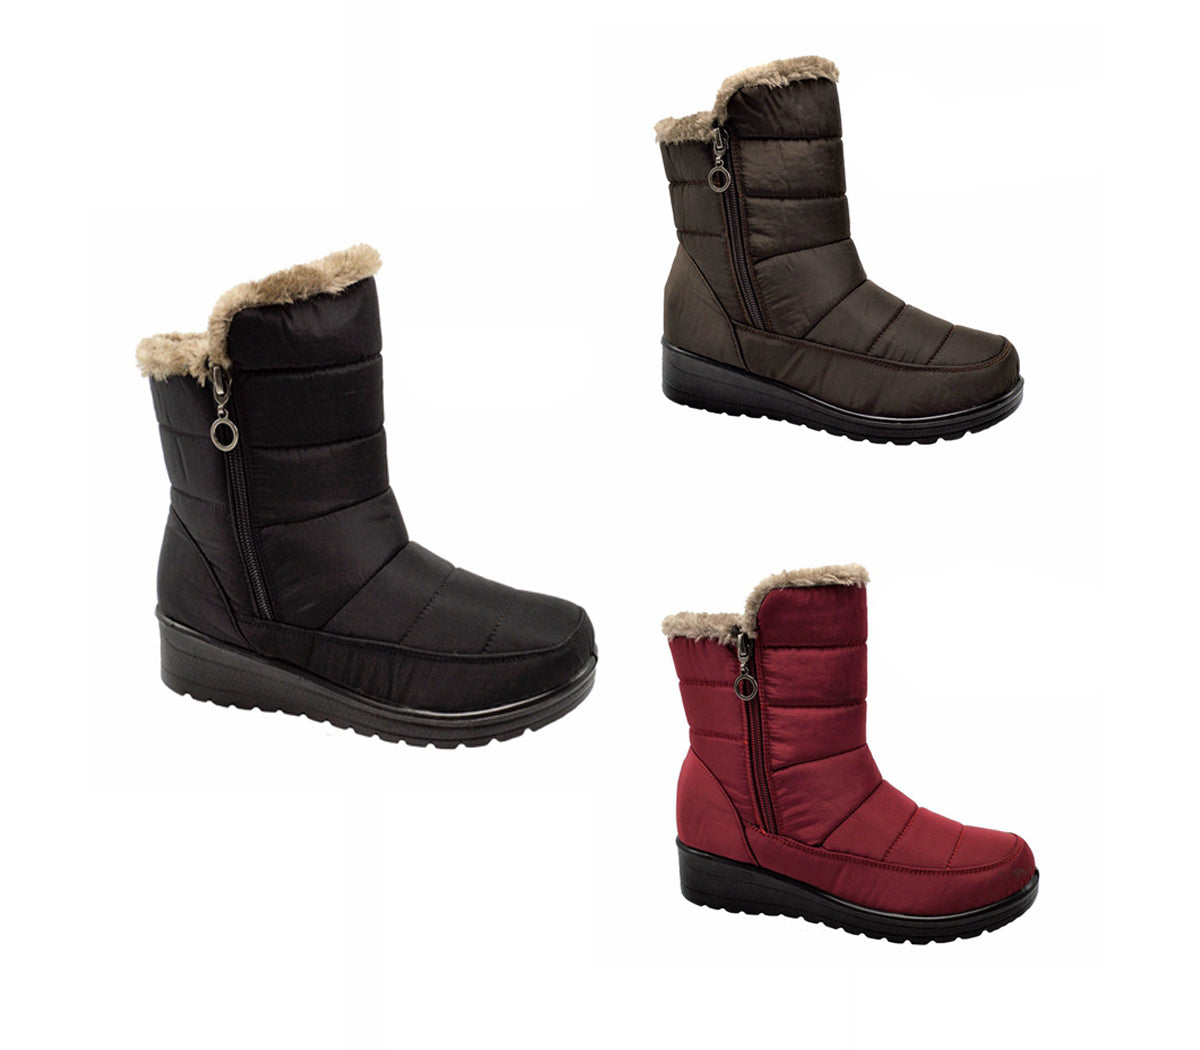 Wholesale Women's Shoes Boots Maggie NCPW1